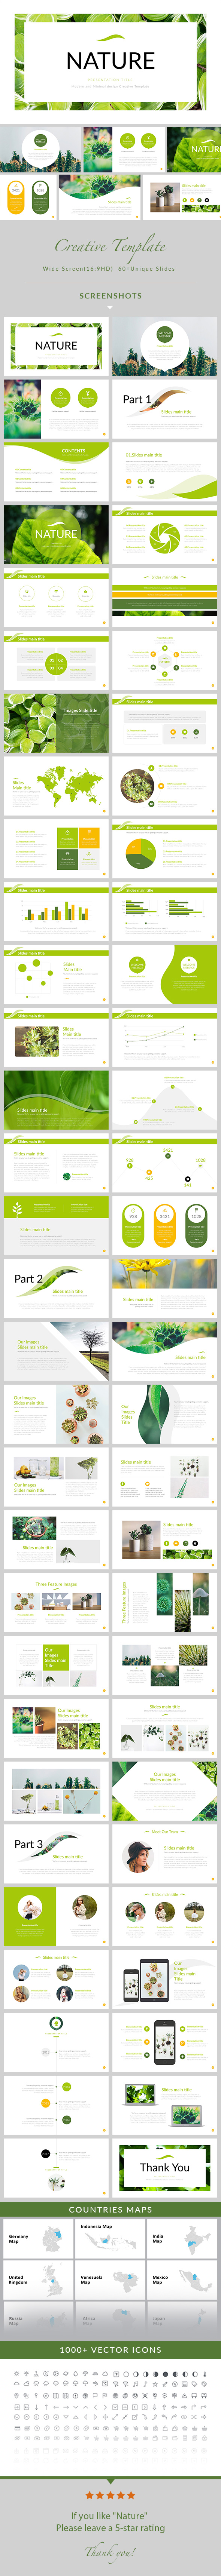 Nature - Simple Creative PowerPoint Template - Creative PowerPoint Templates